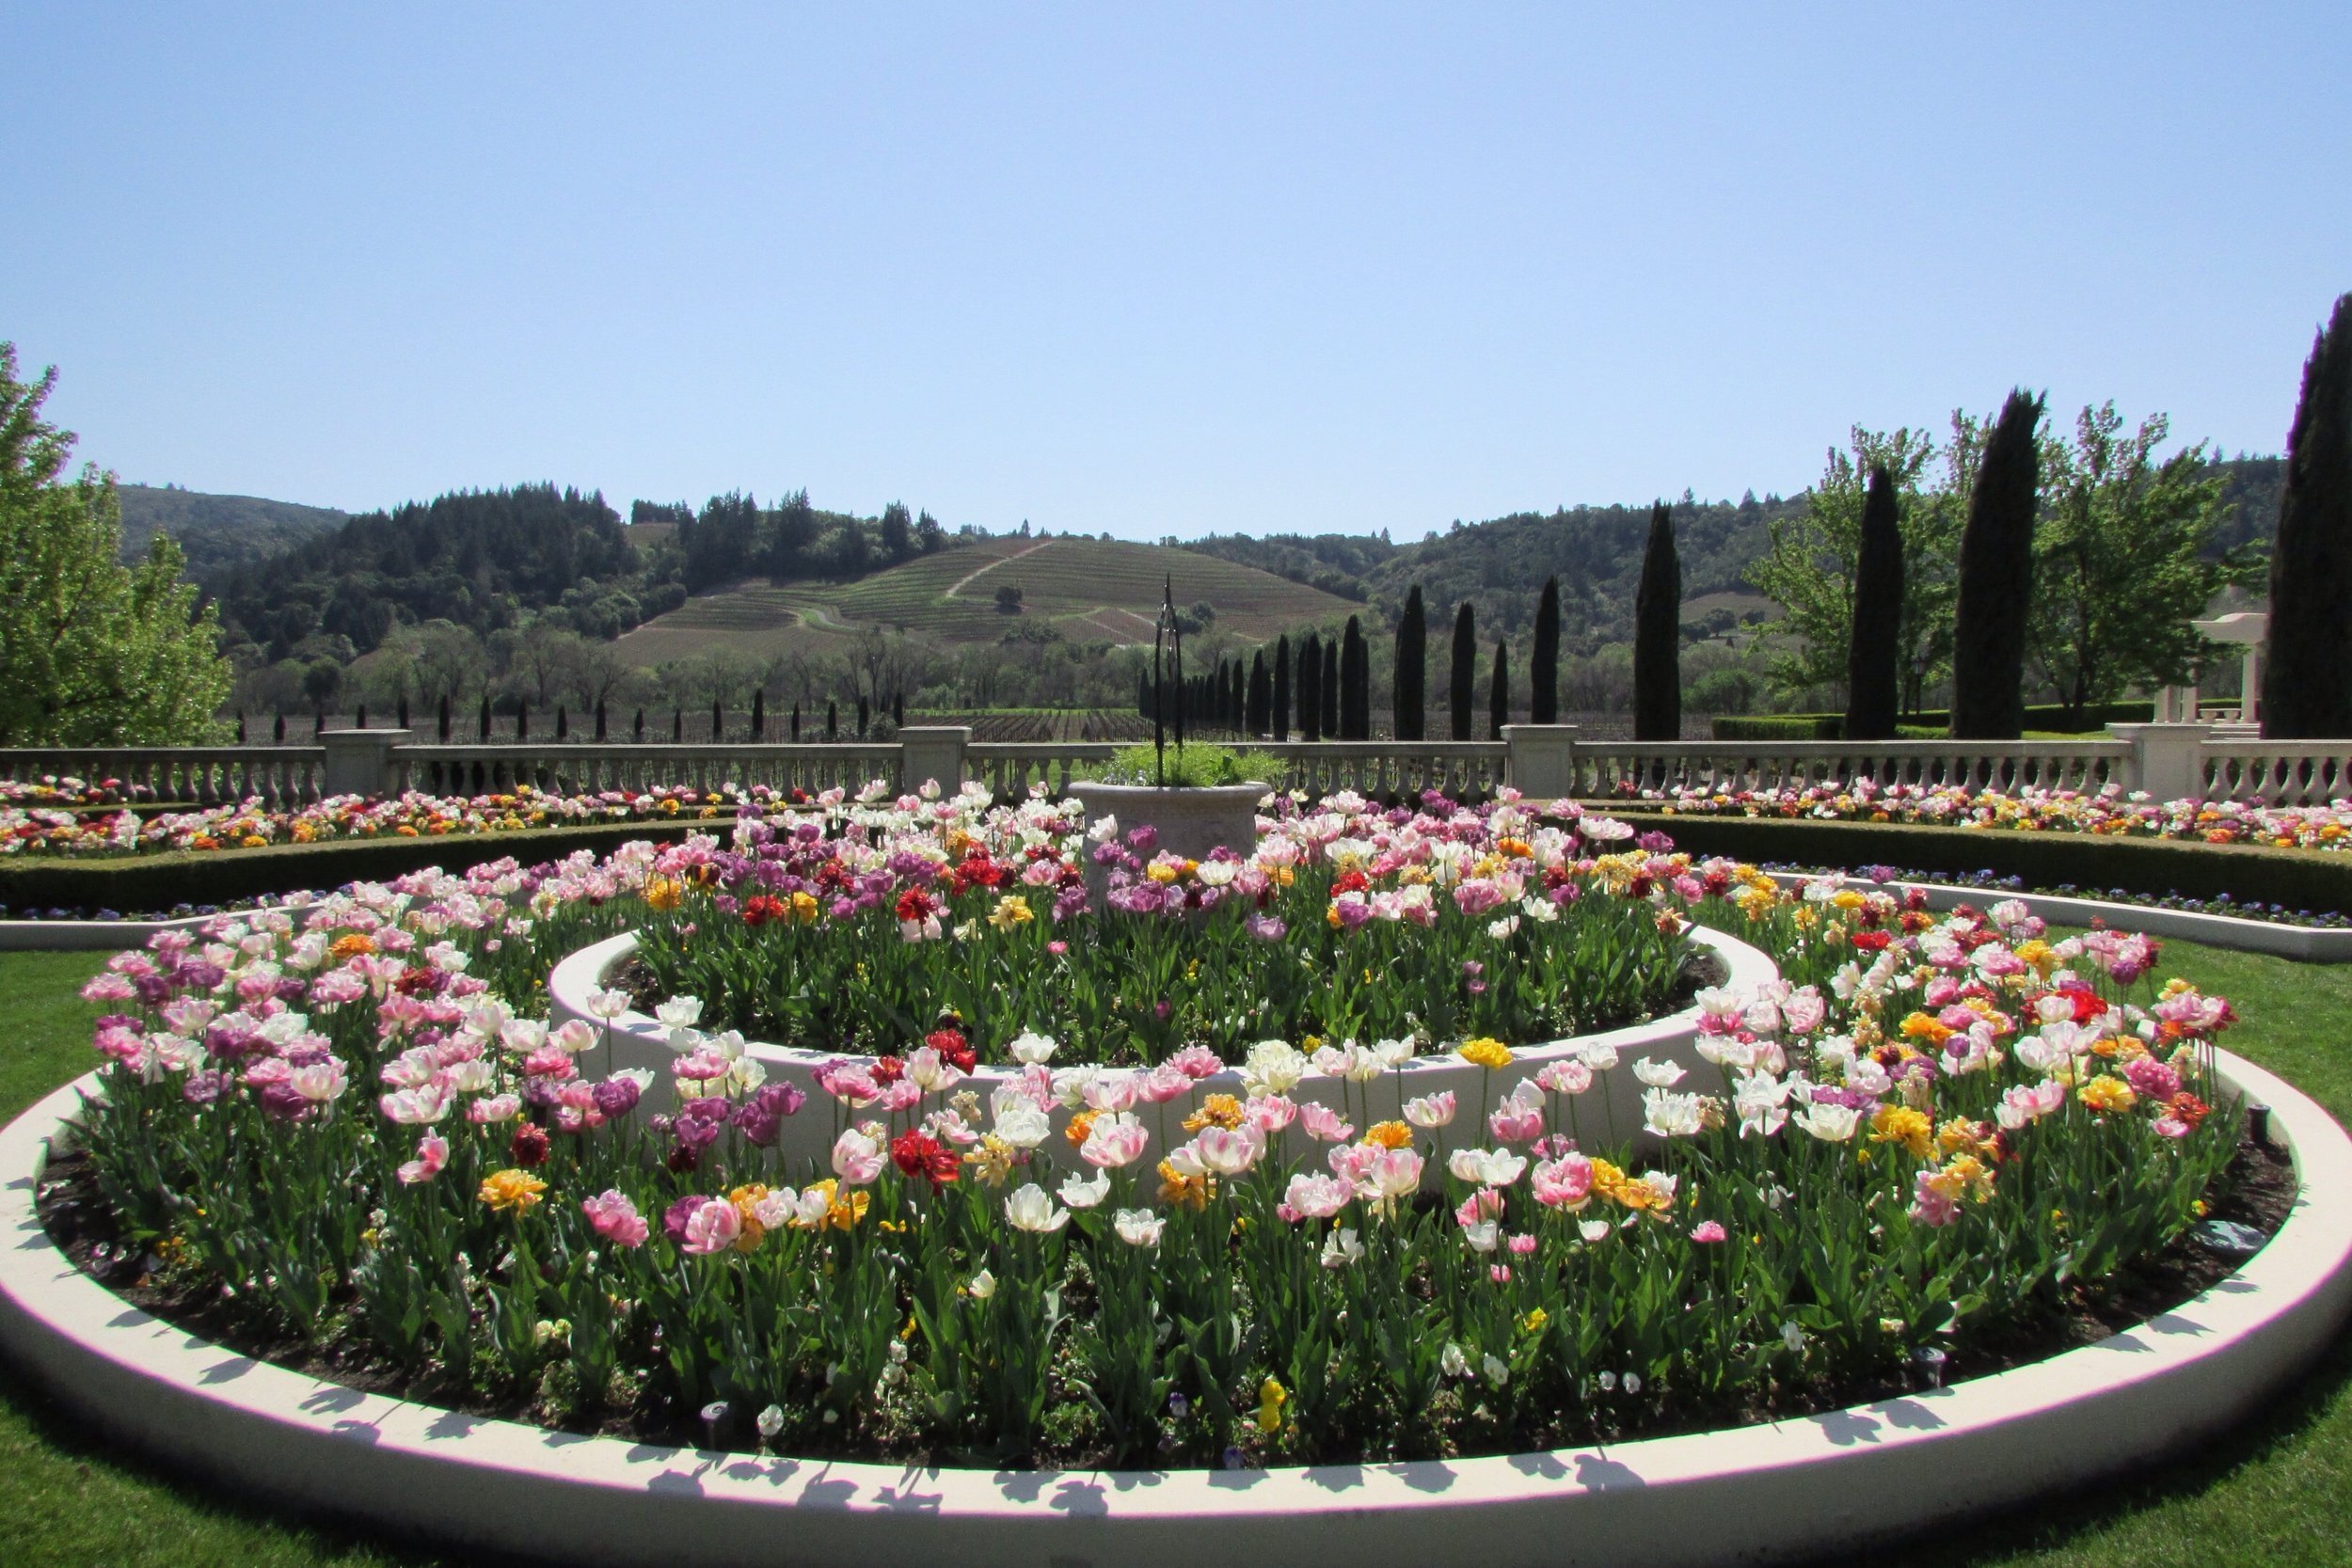 Visit this winery for it's perfectly manicured lawns and stunning flowery landscapes at a reasonable tasting price.